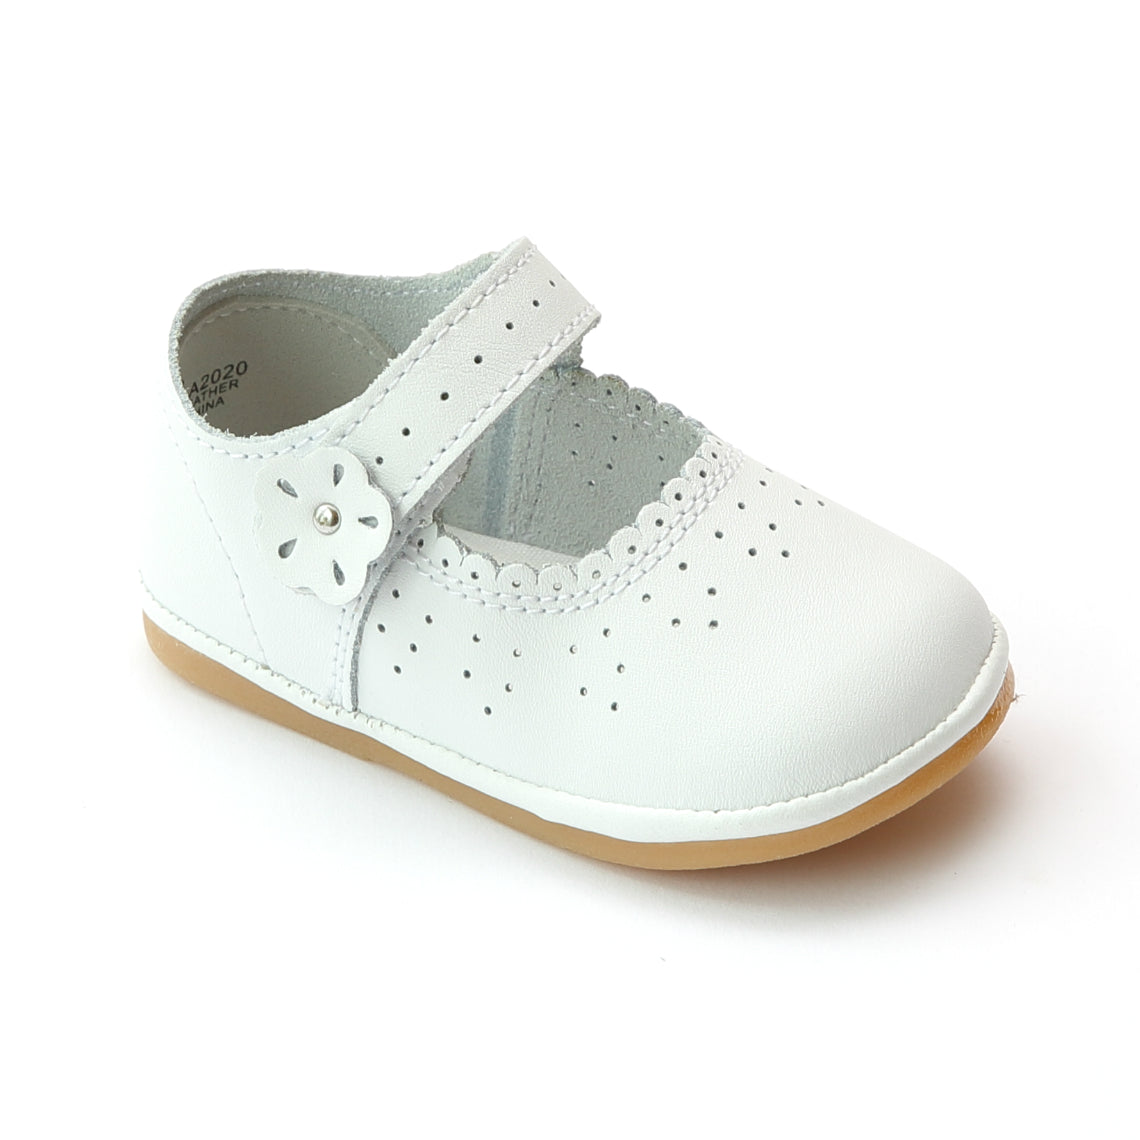 Angel Shoes Infant Girls A2020 White Leather Scalloped